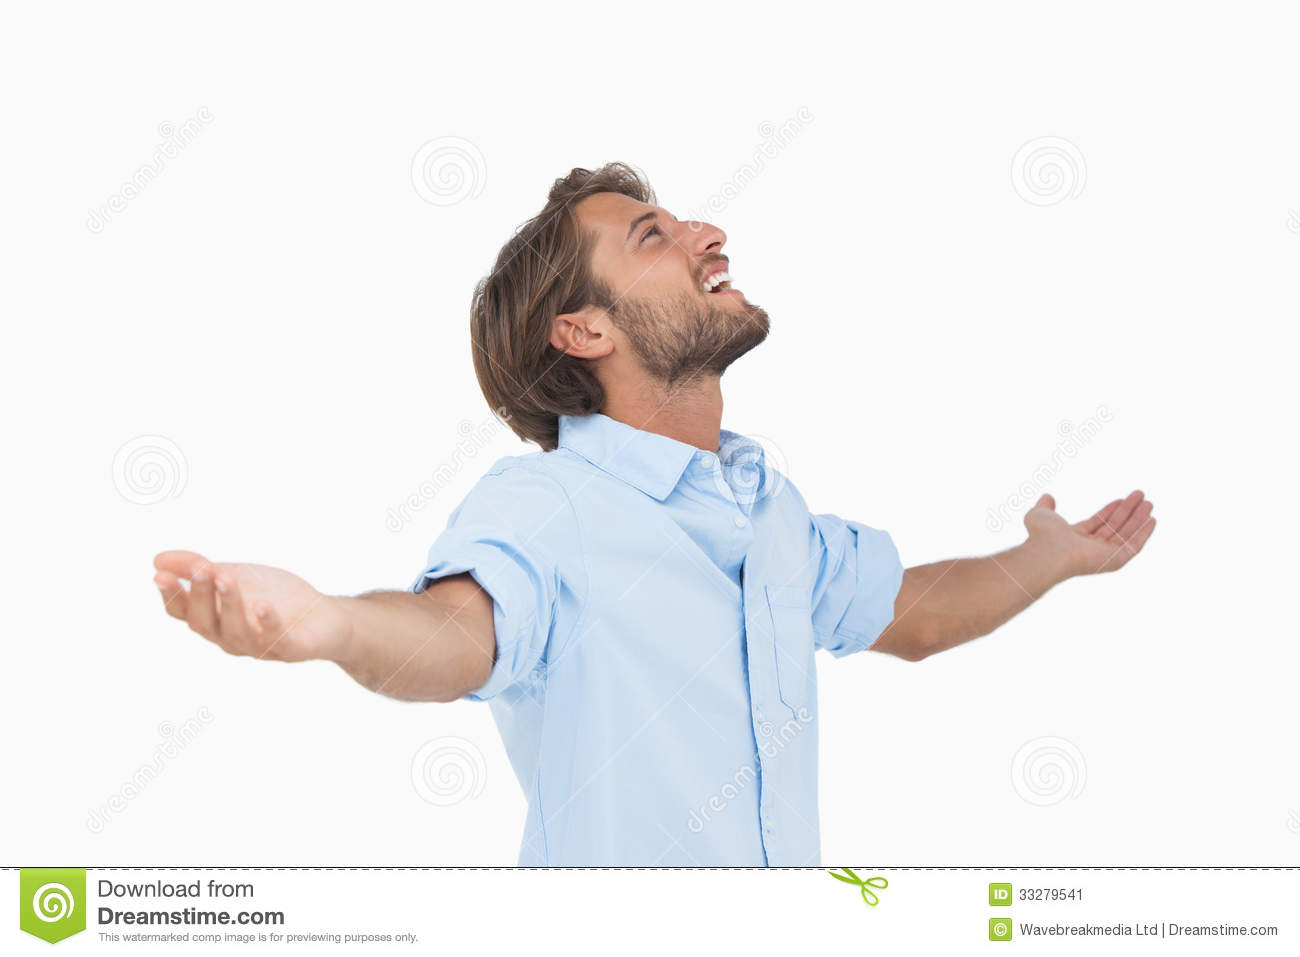 happy-man-looking-up-arms-outstretched-white-background-33279541.jpg